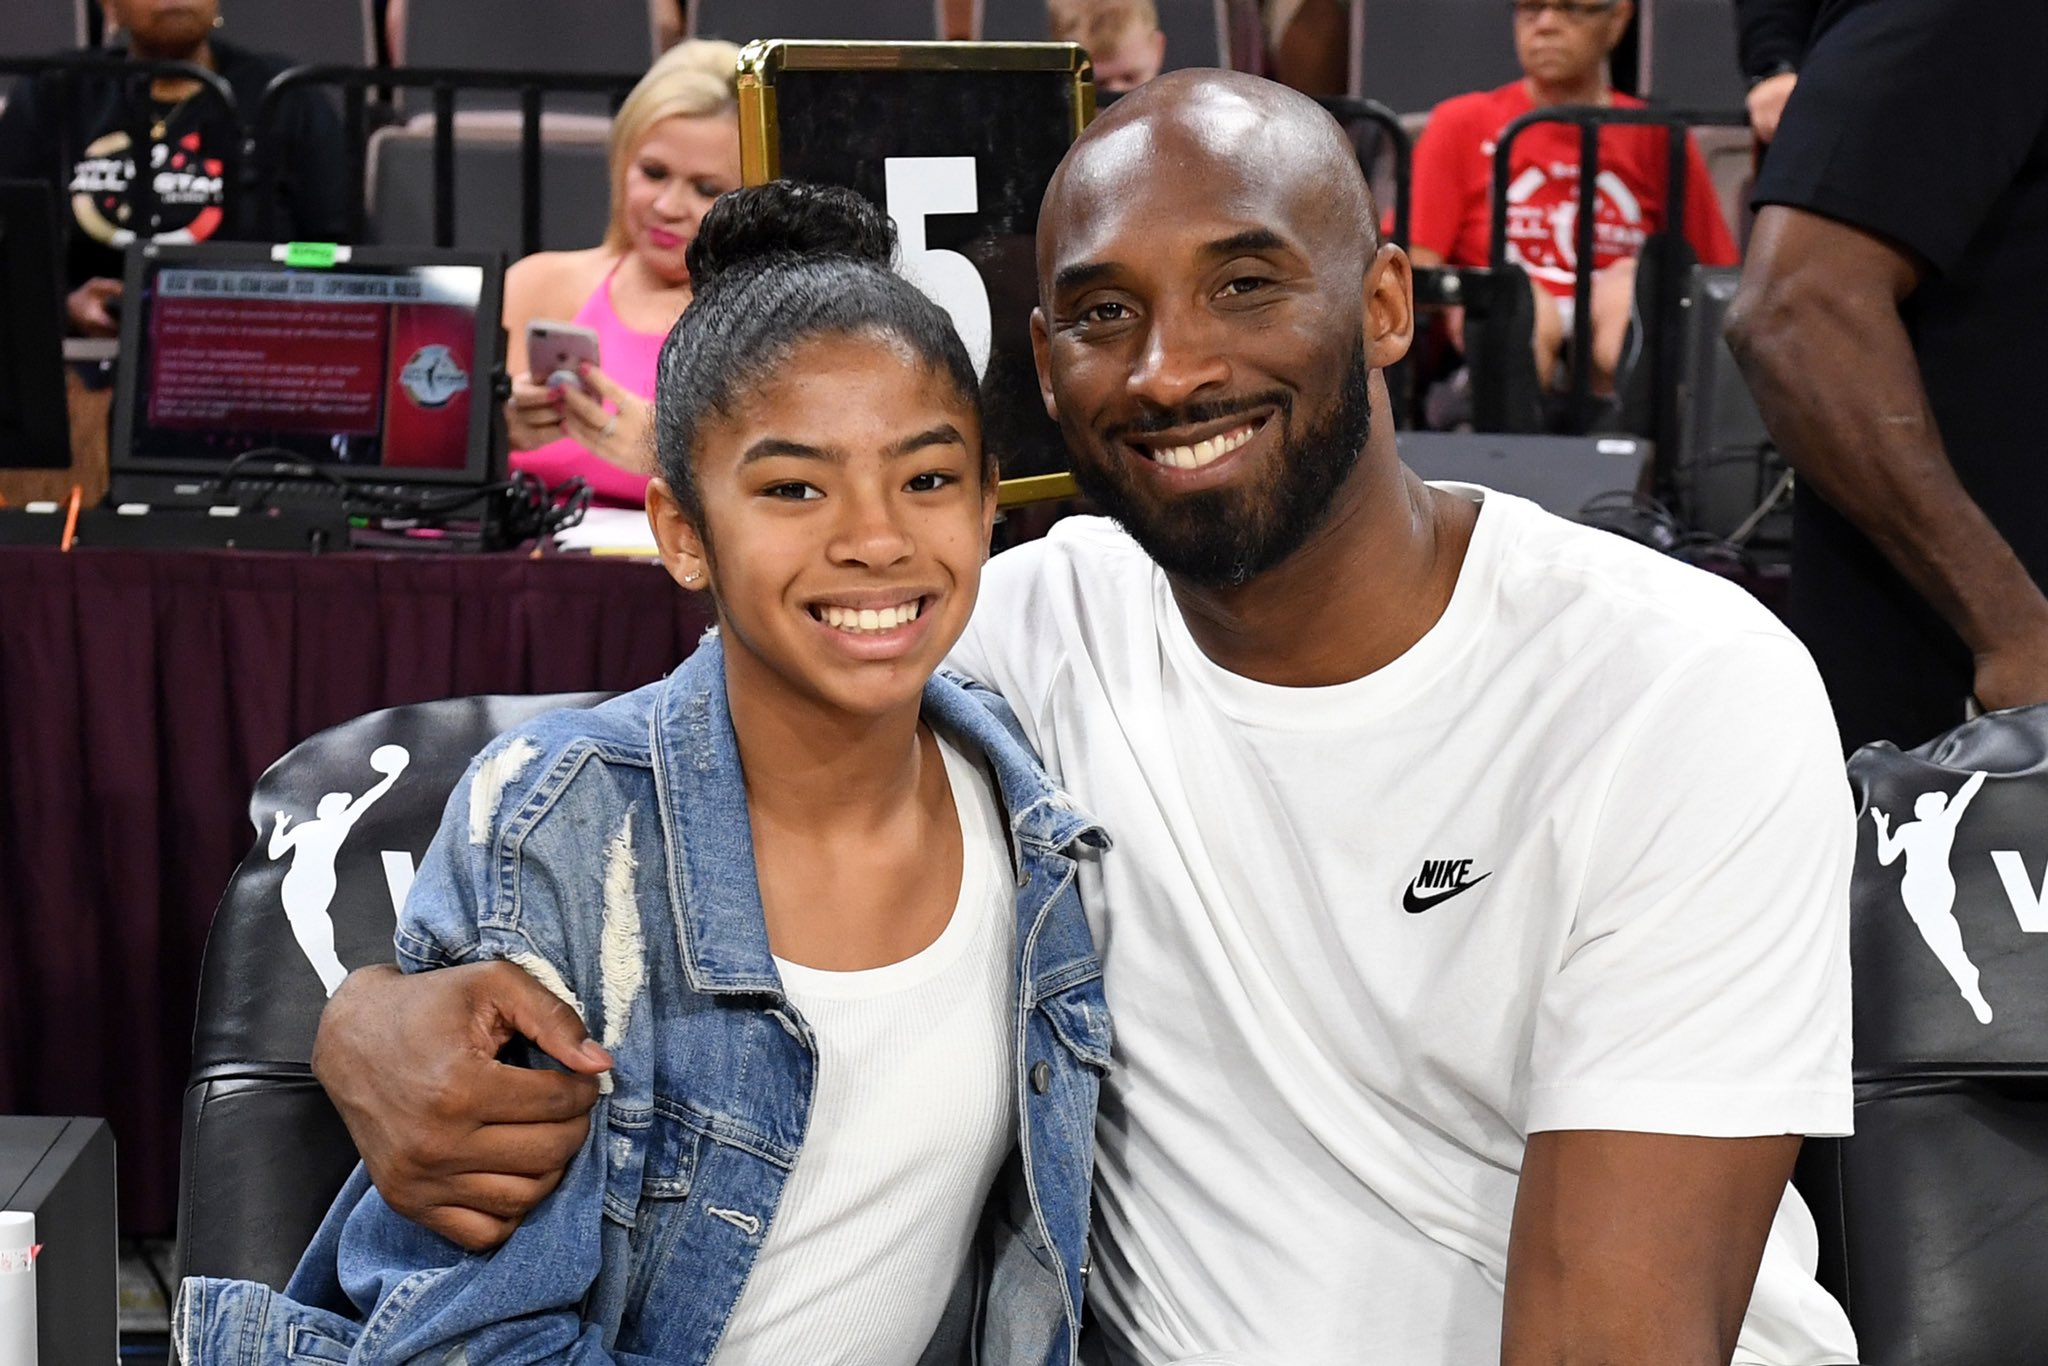 Bodies of Kobe Bryant and his daughter, 13, are returned to their family